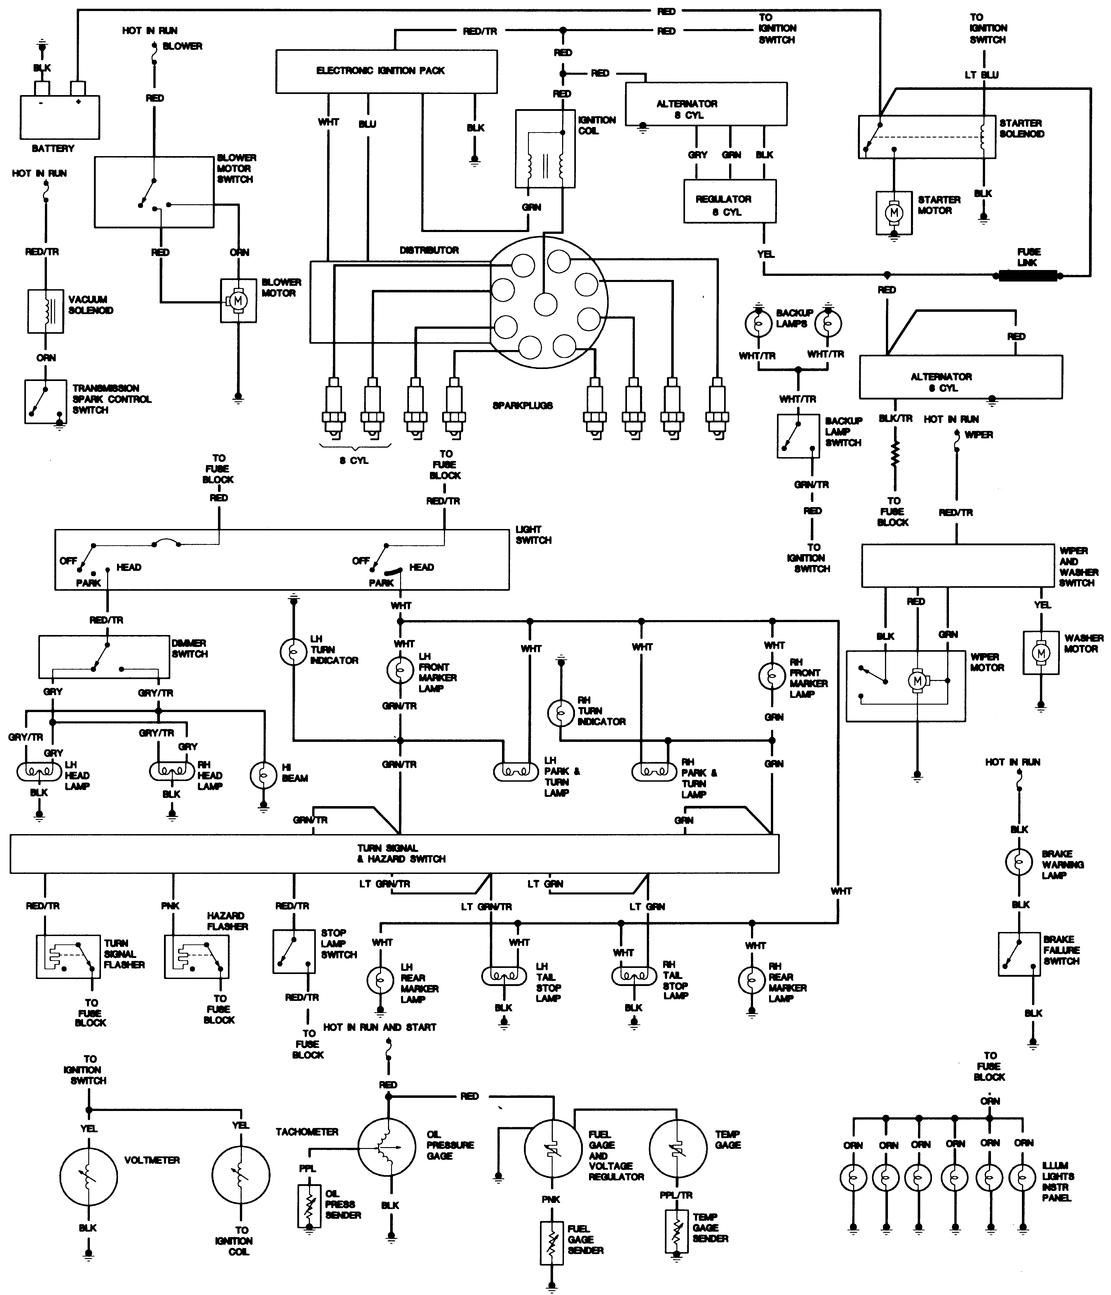 switch wiring diagram on jeep cj5 ignition switch wiring schematic